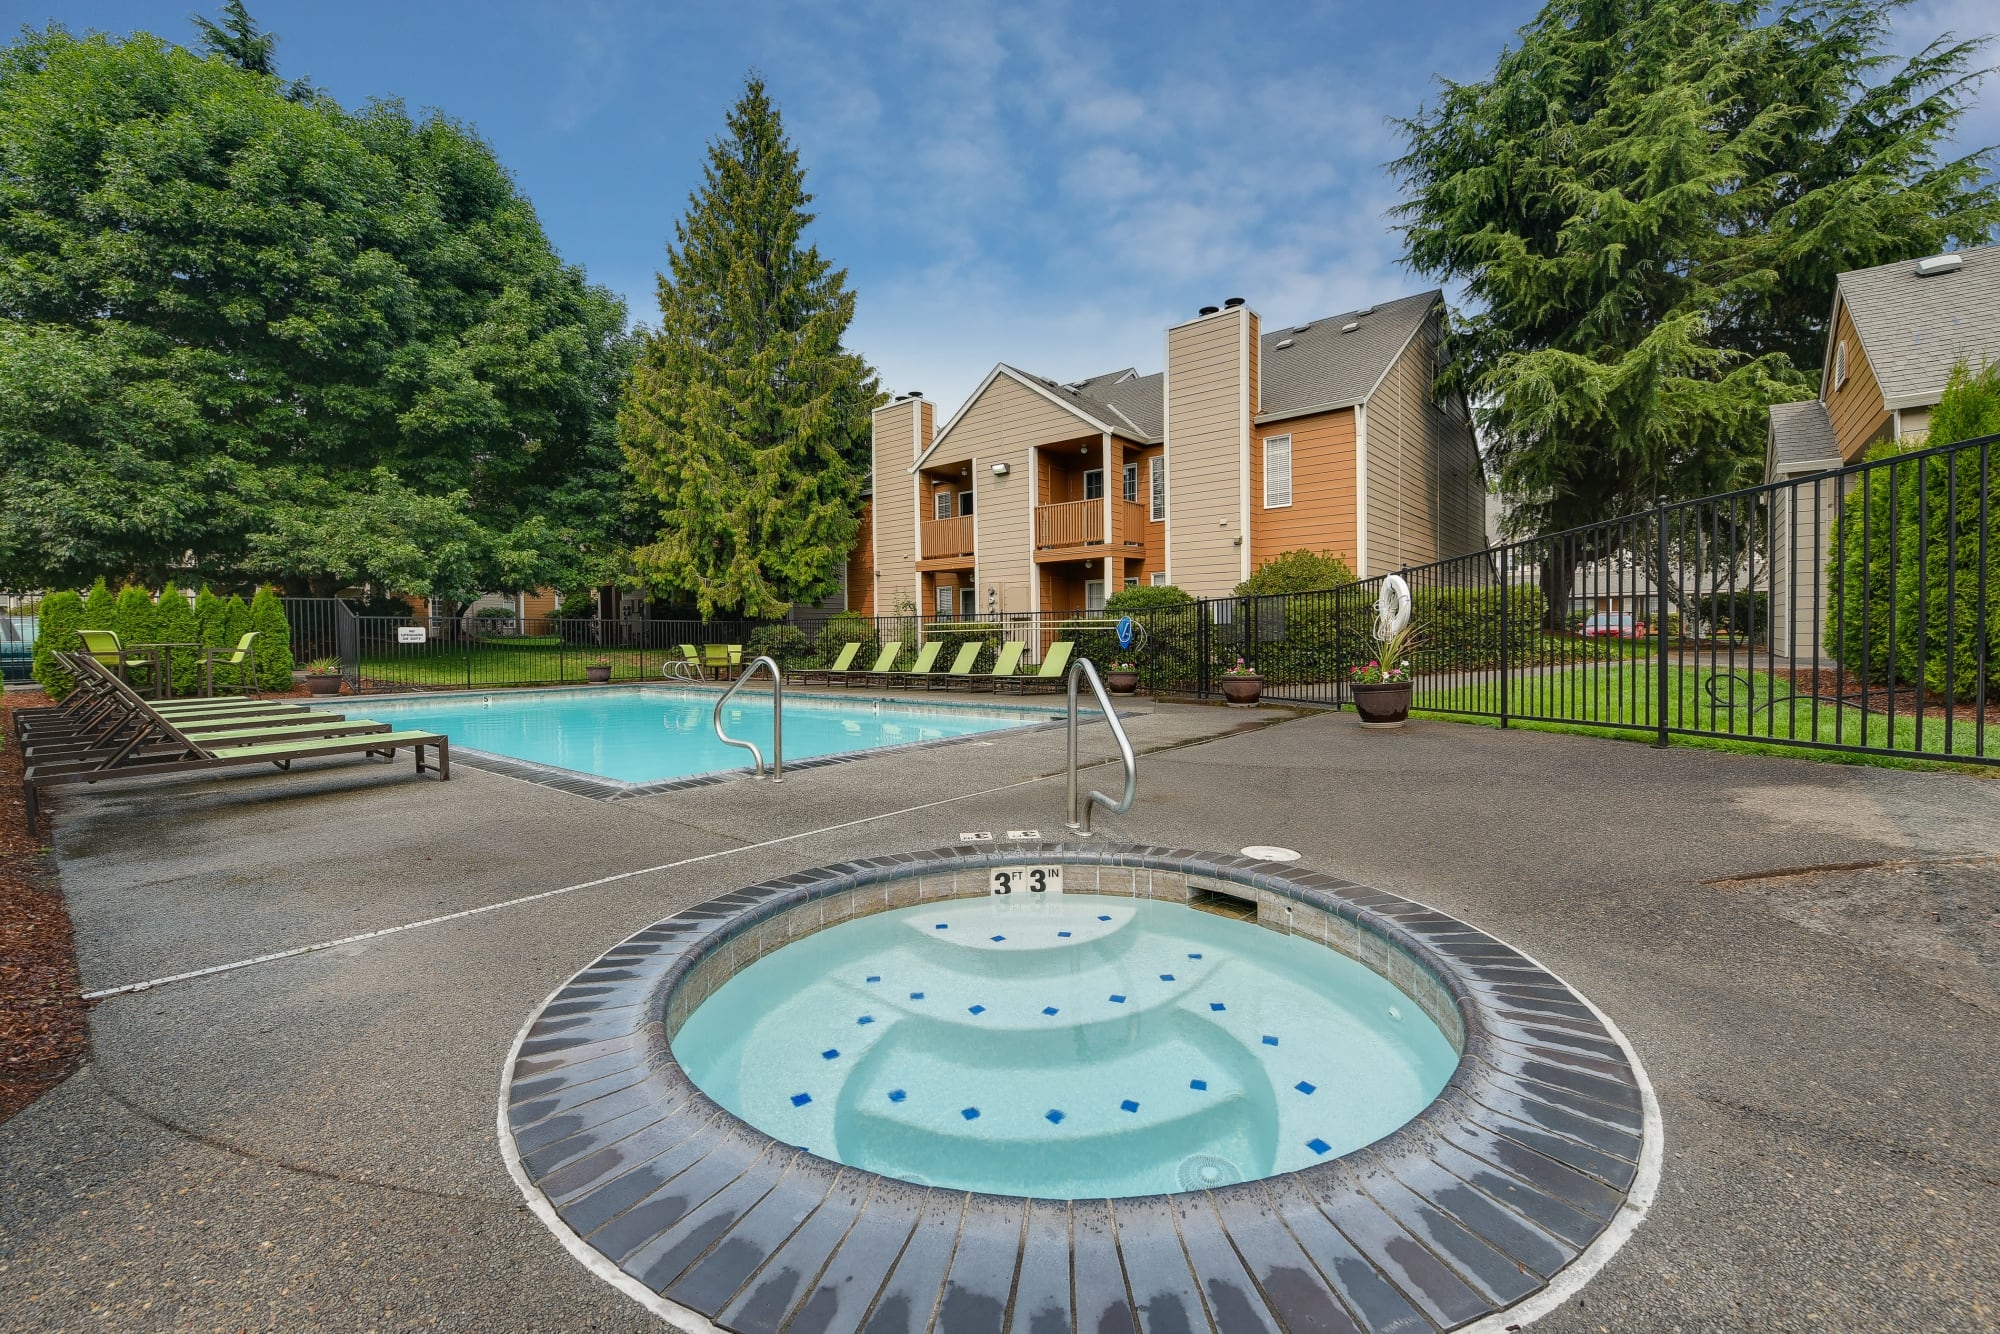 Spa/Pool Living at Carriage House Apartments includes a pool